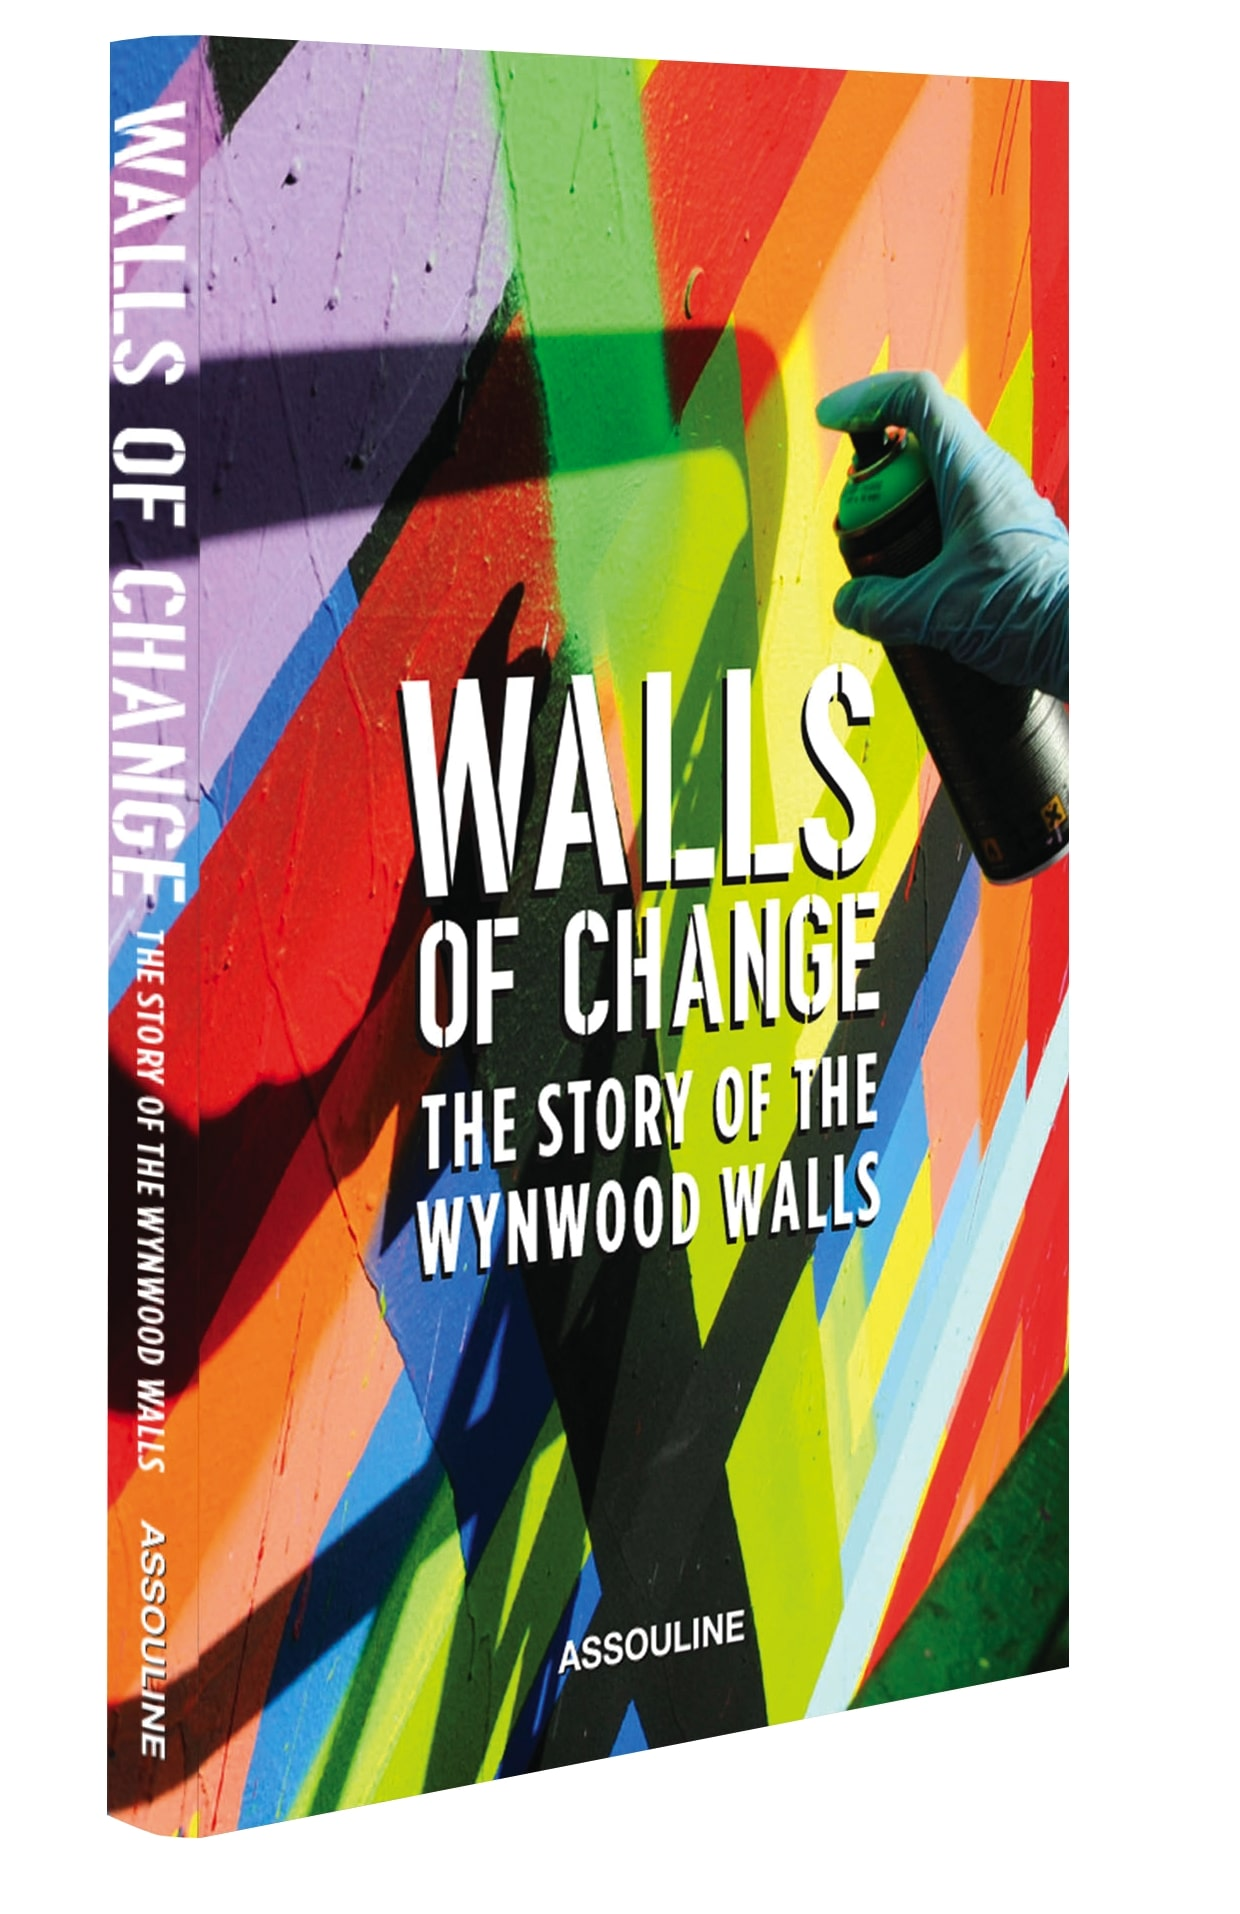 Walls_Of_Change_The_Story_Of_The_Wynwood_Wall_3D_Cover_Rendering.jpg